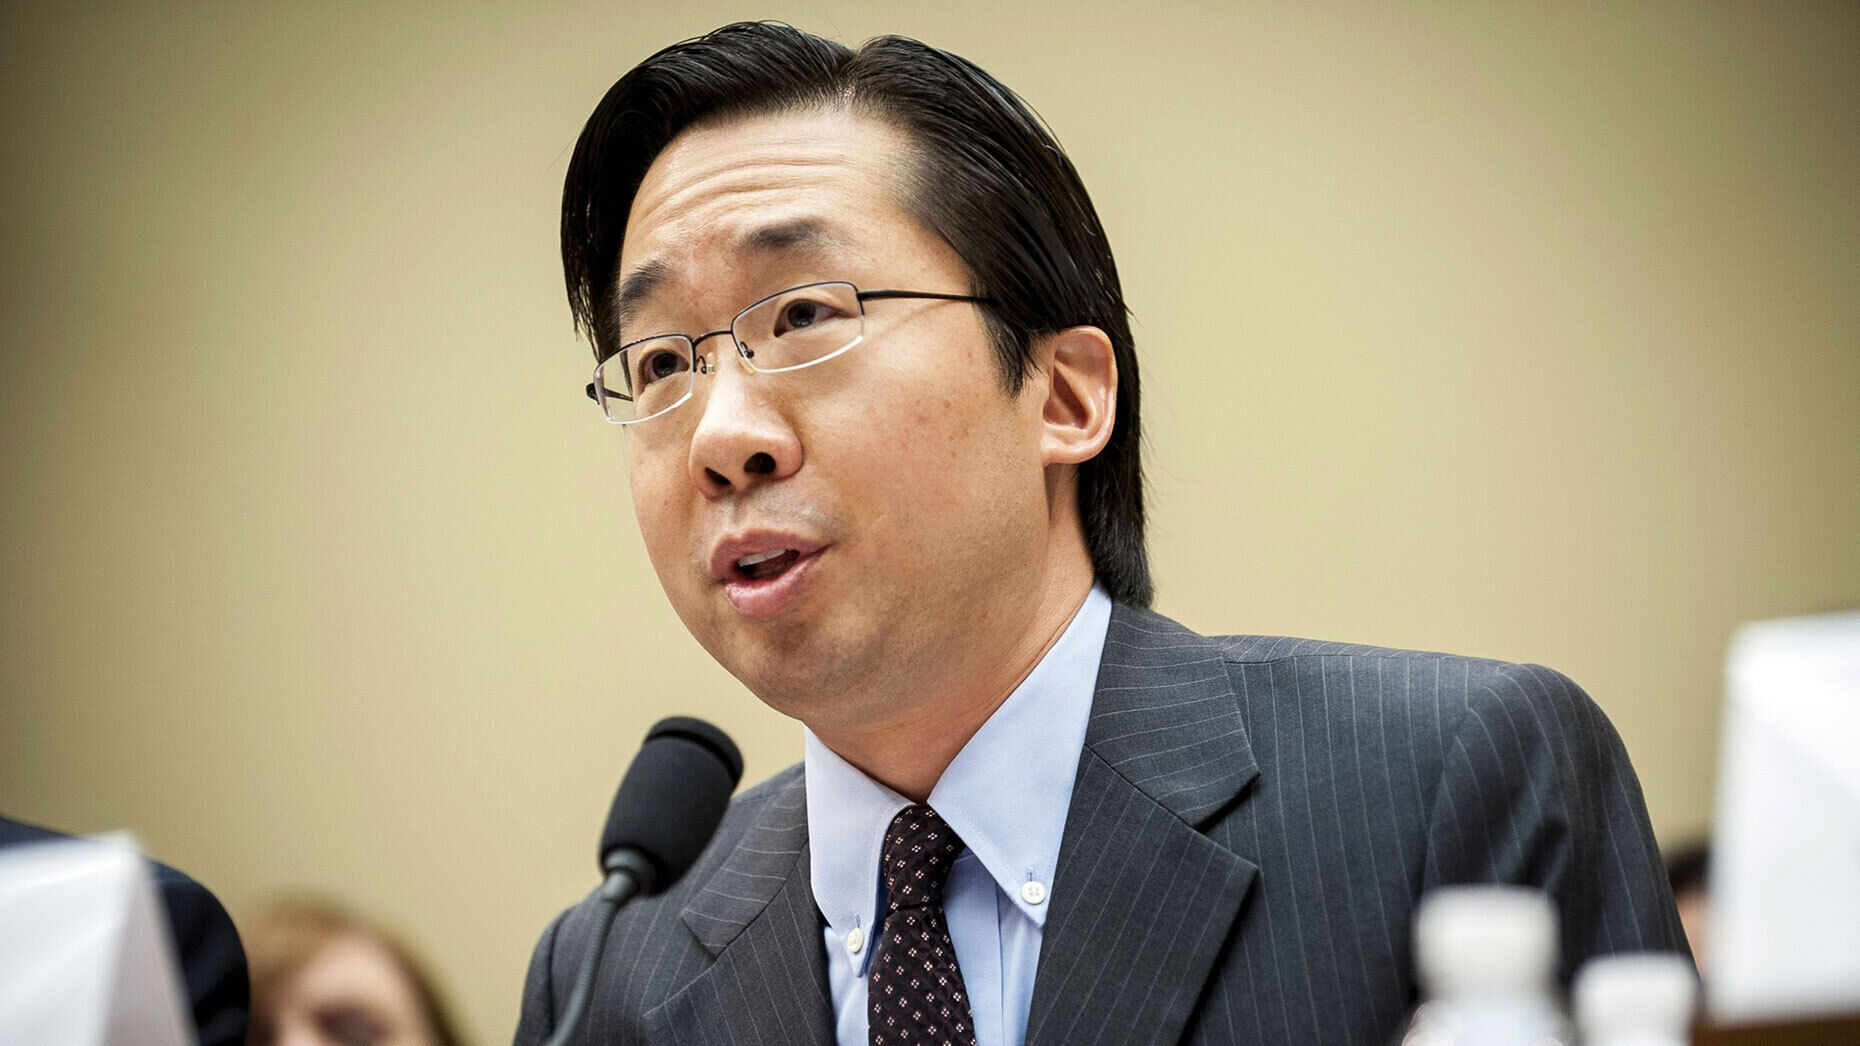 Devoted Health cofounder Todd Park when he was the U.S. chief technology officer in 2013. Photo: Bloomberg